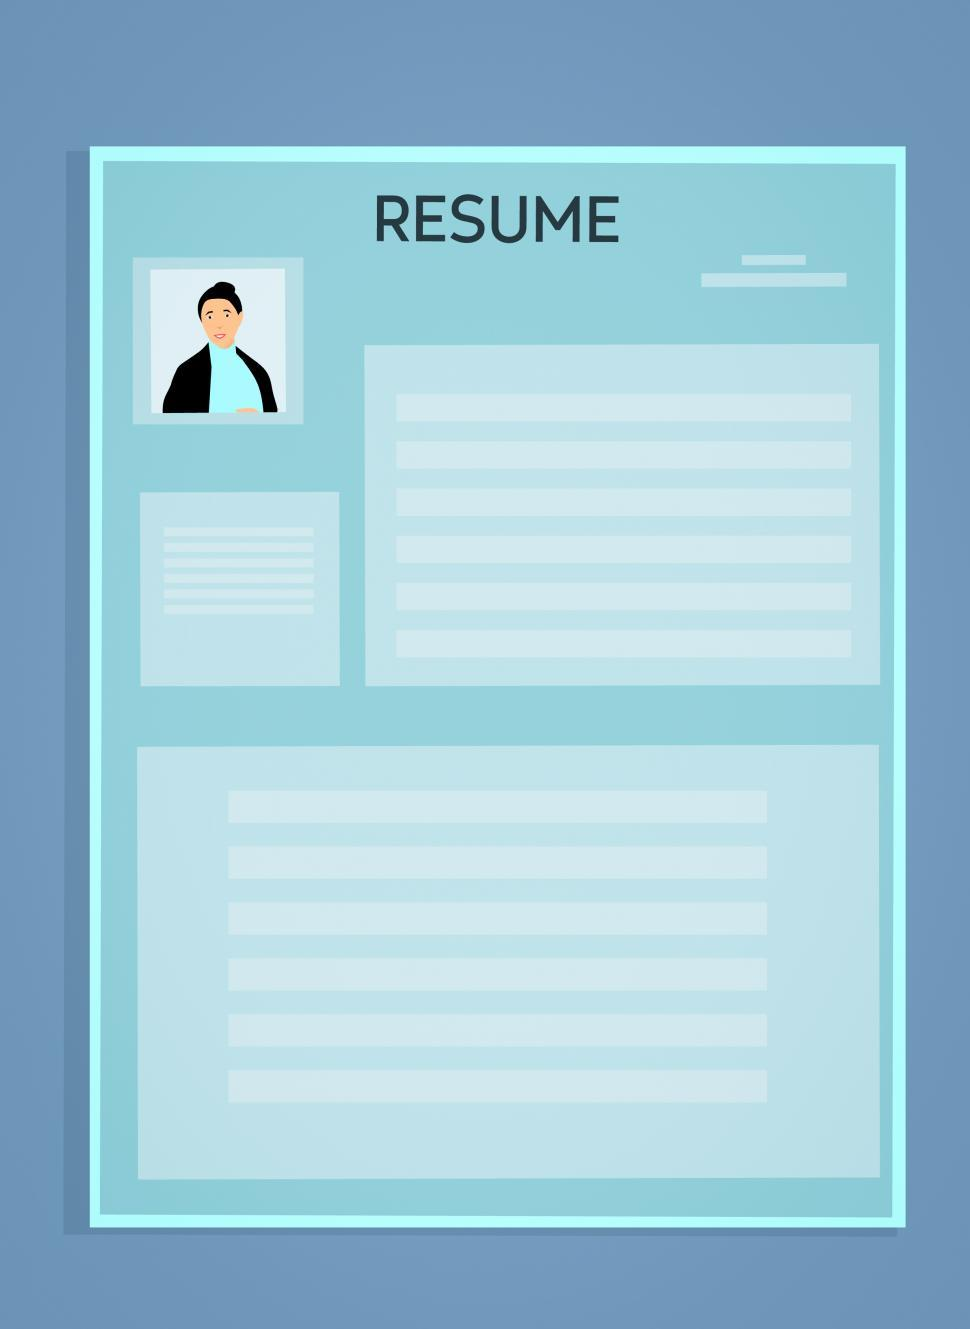 Download Free Stock HD Photo of resume template  Online